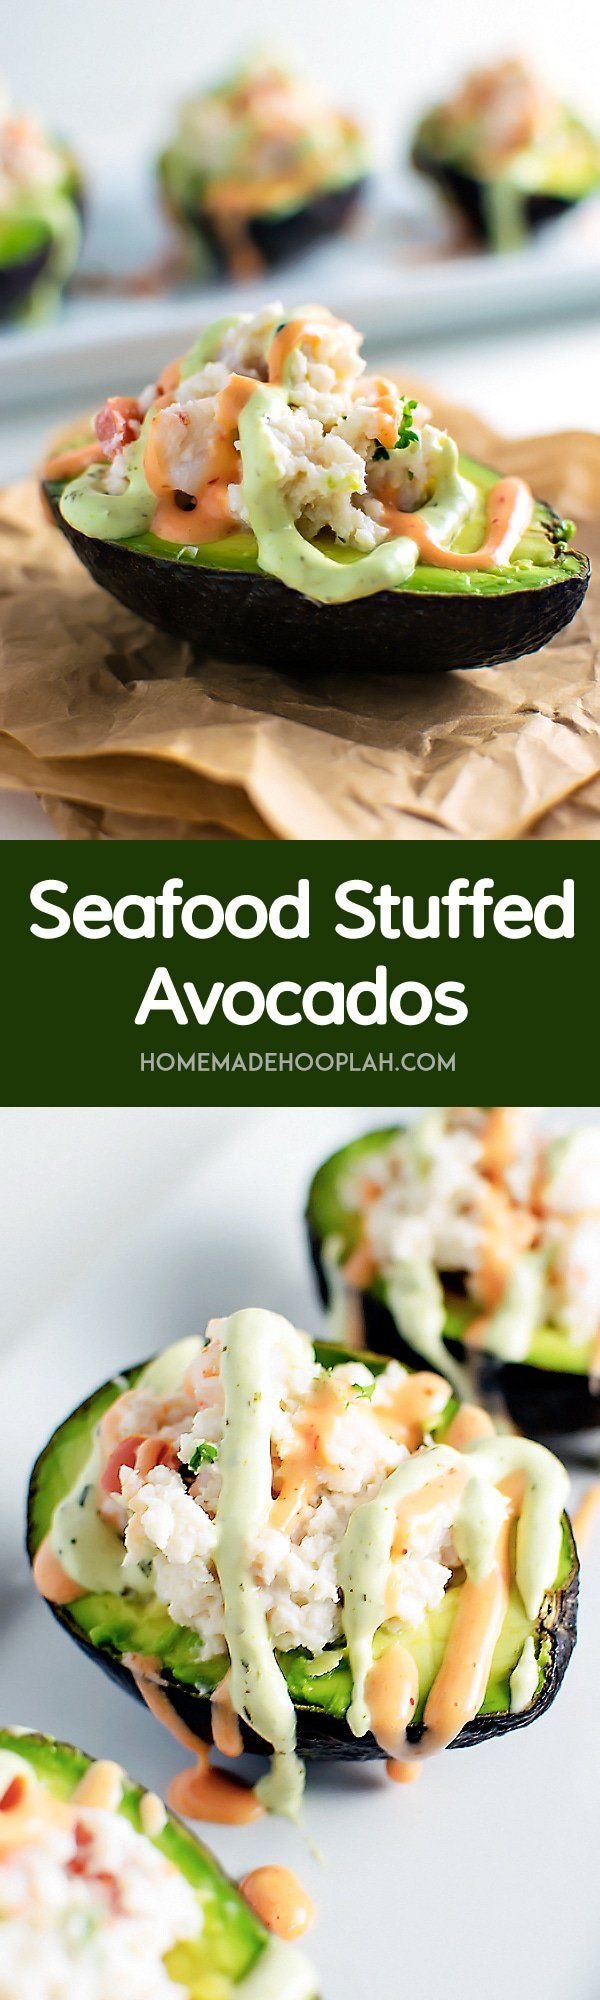 Seafood+Stuffed+Avocados!+Halved+avocados+filled+with+chopped+shrimp,+fresh+crab,+and+tomato+and+then+drizzled+with+sriracha+and+avocado+creams+on+top.+|+HomemadeHooplah.com